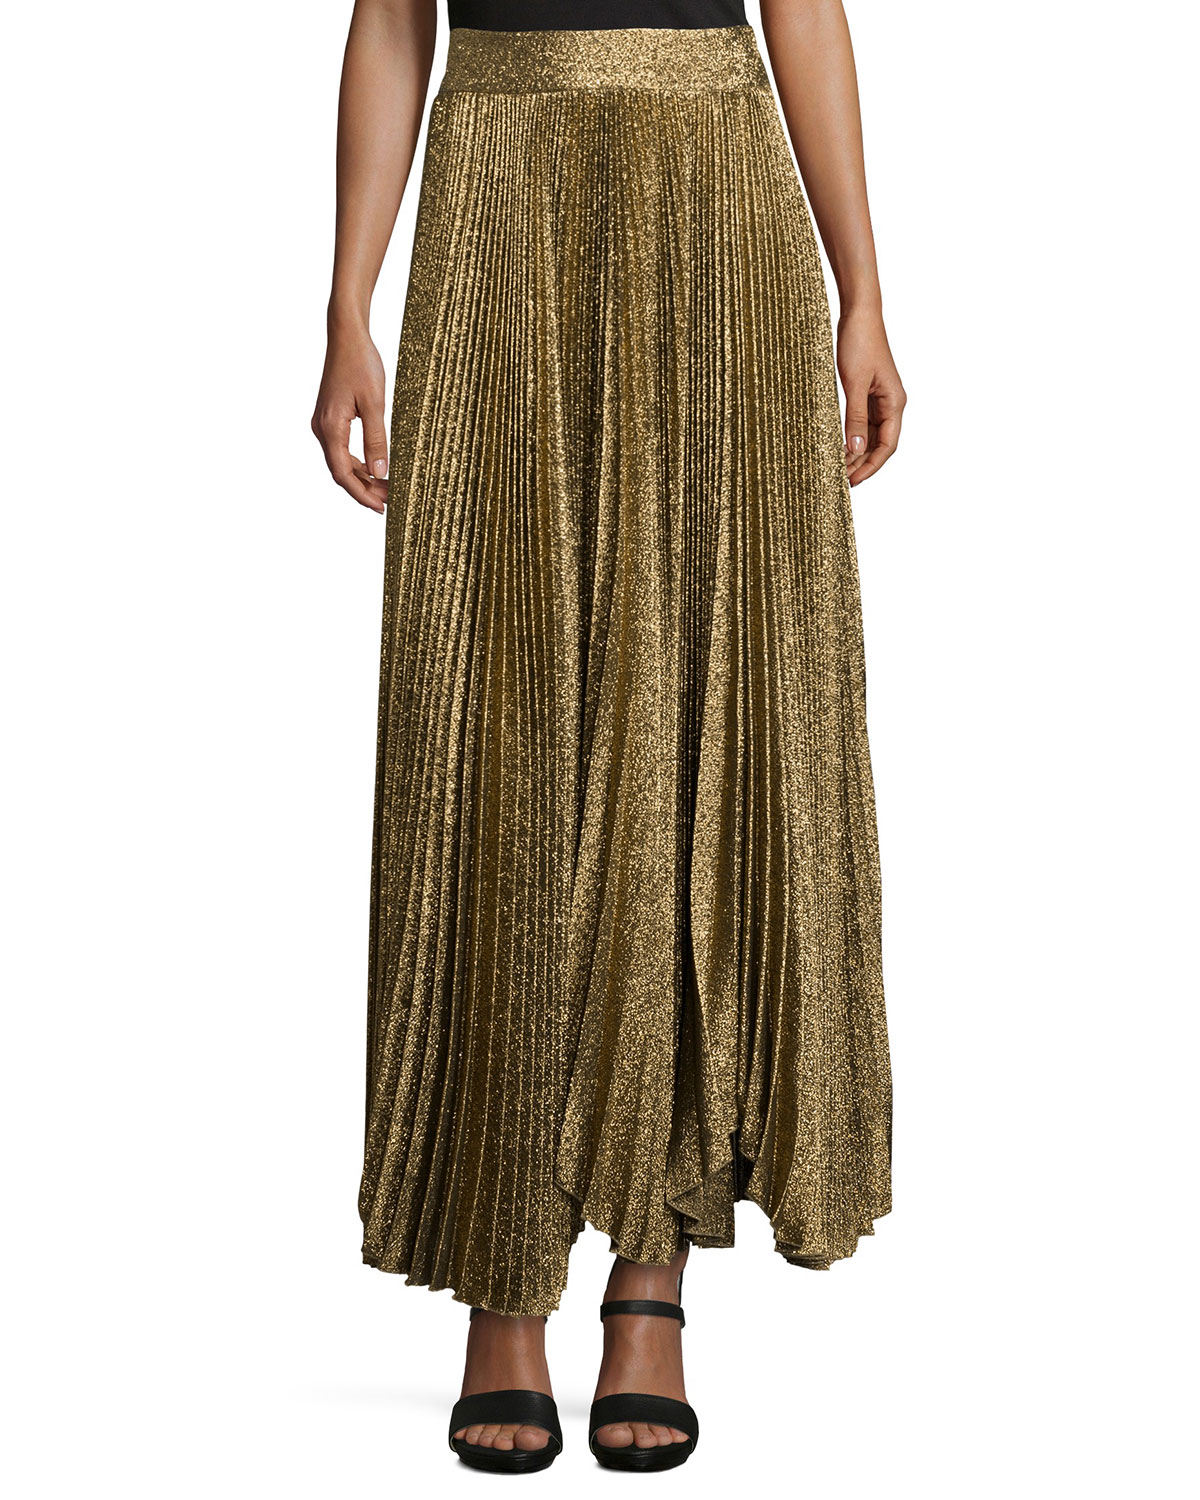 Alice + Olivia Katz Shimmery Pleated Maxi Skirt, Size: 4, Rose Gold